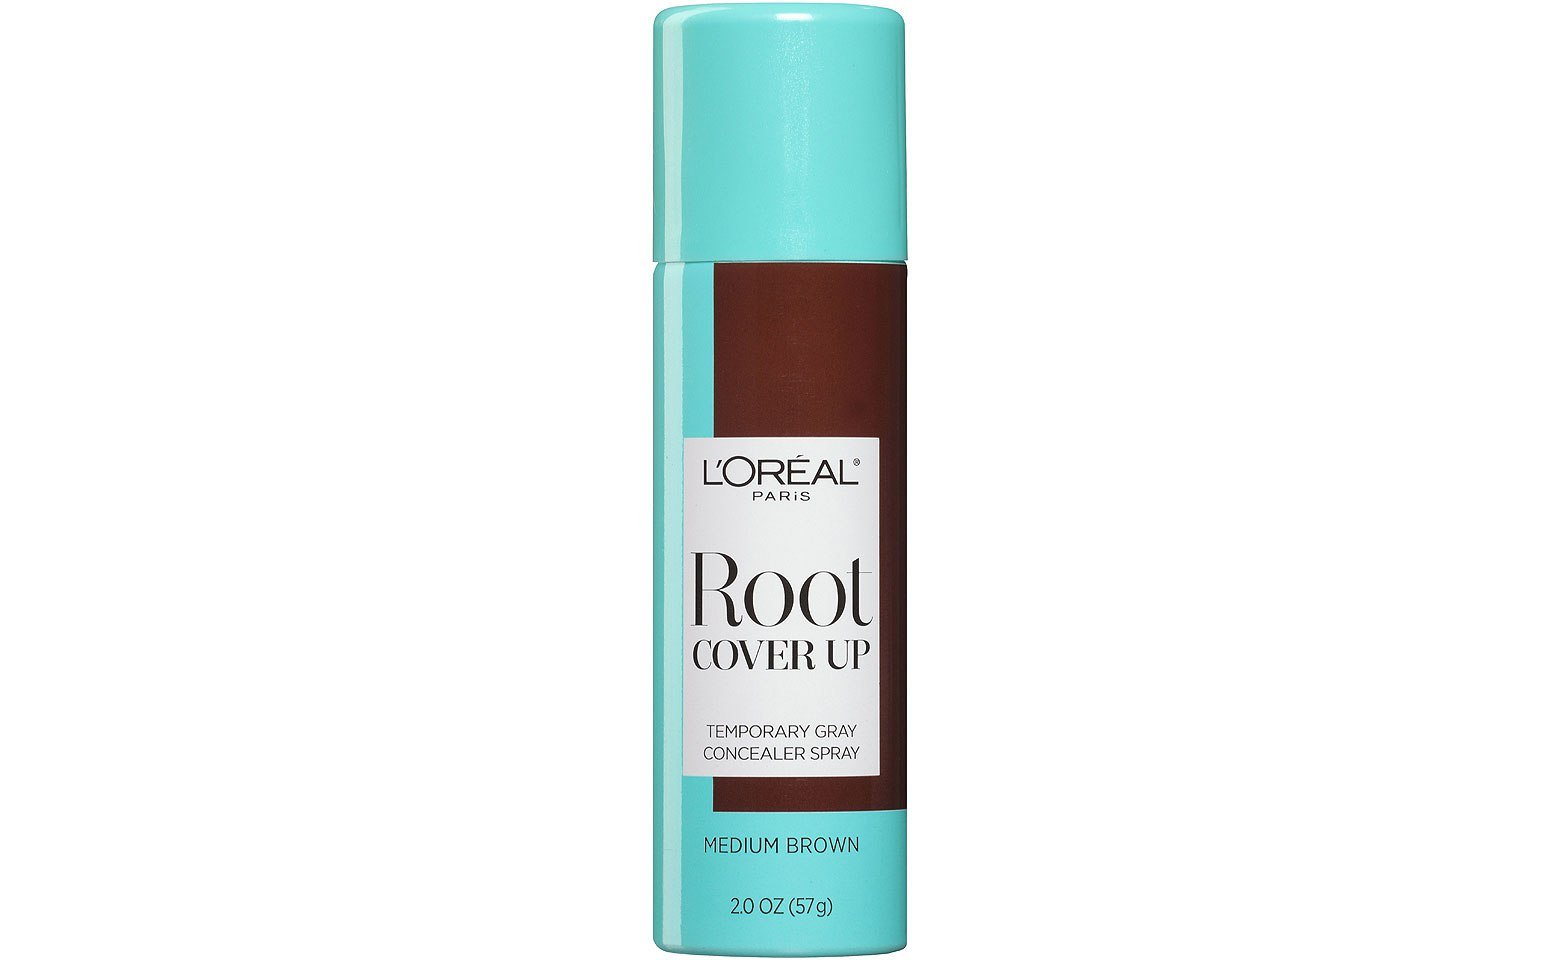 L'Oreal Root Coverup